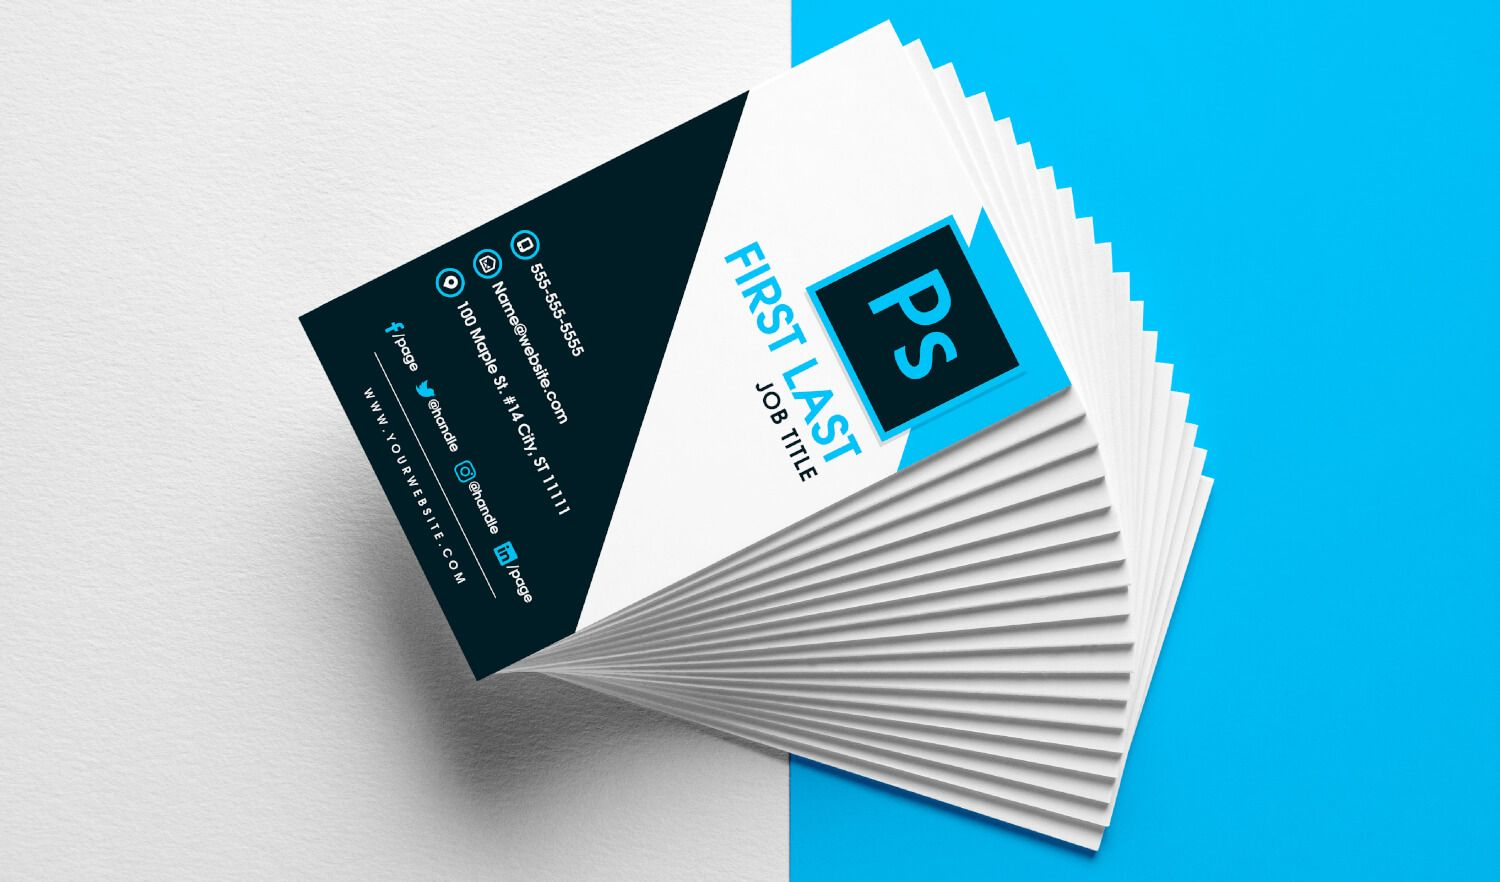 Free Vertical Business Card Template In Psd Format Inside Psd Name Card Vertical Business Card Template Business Card Template Photoshop Calling Card Template